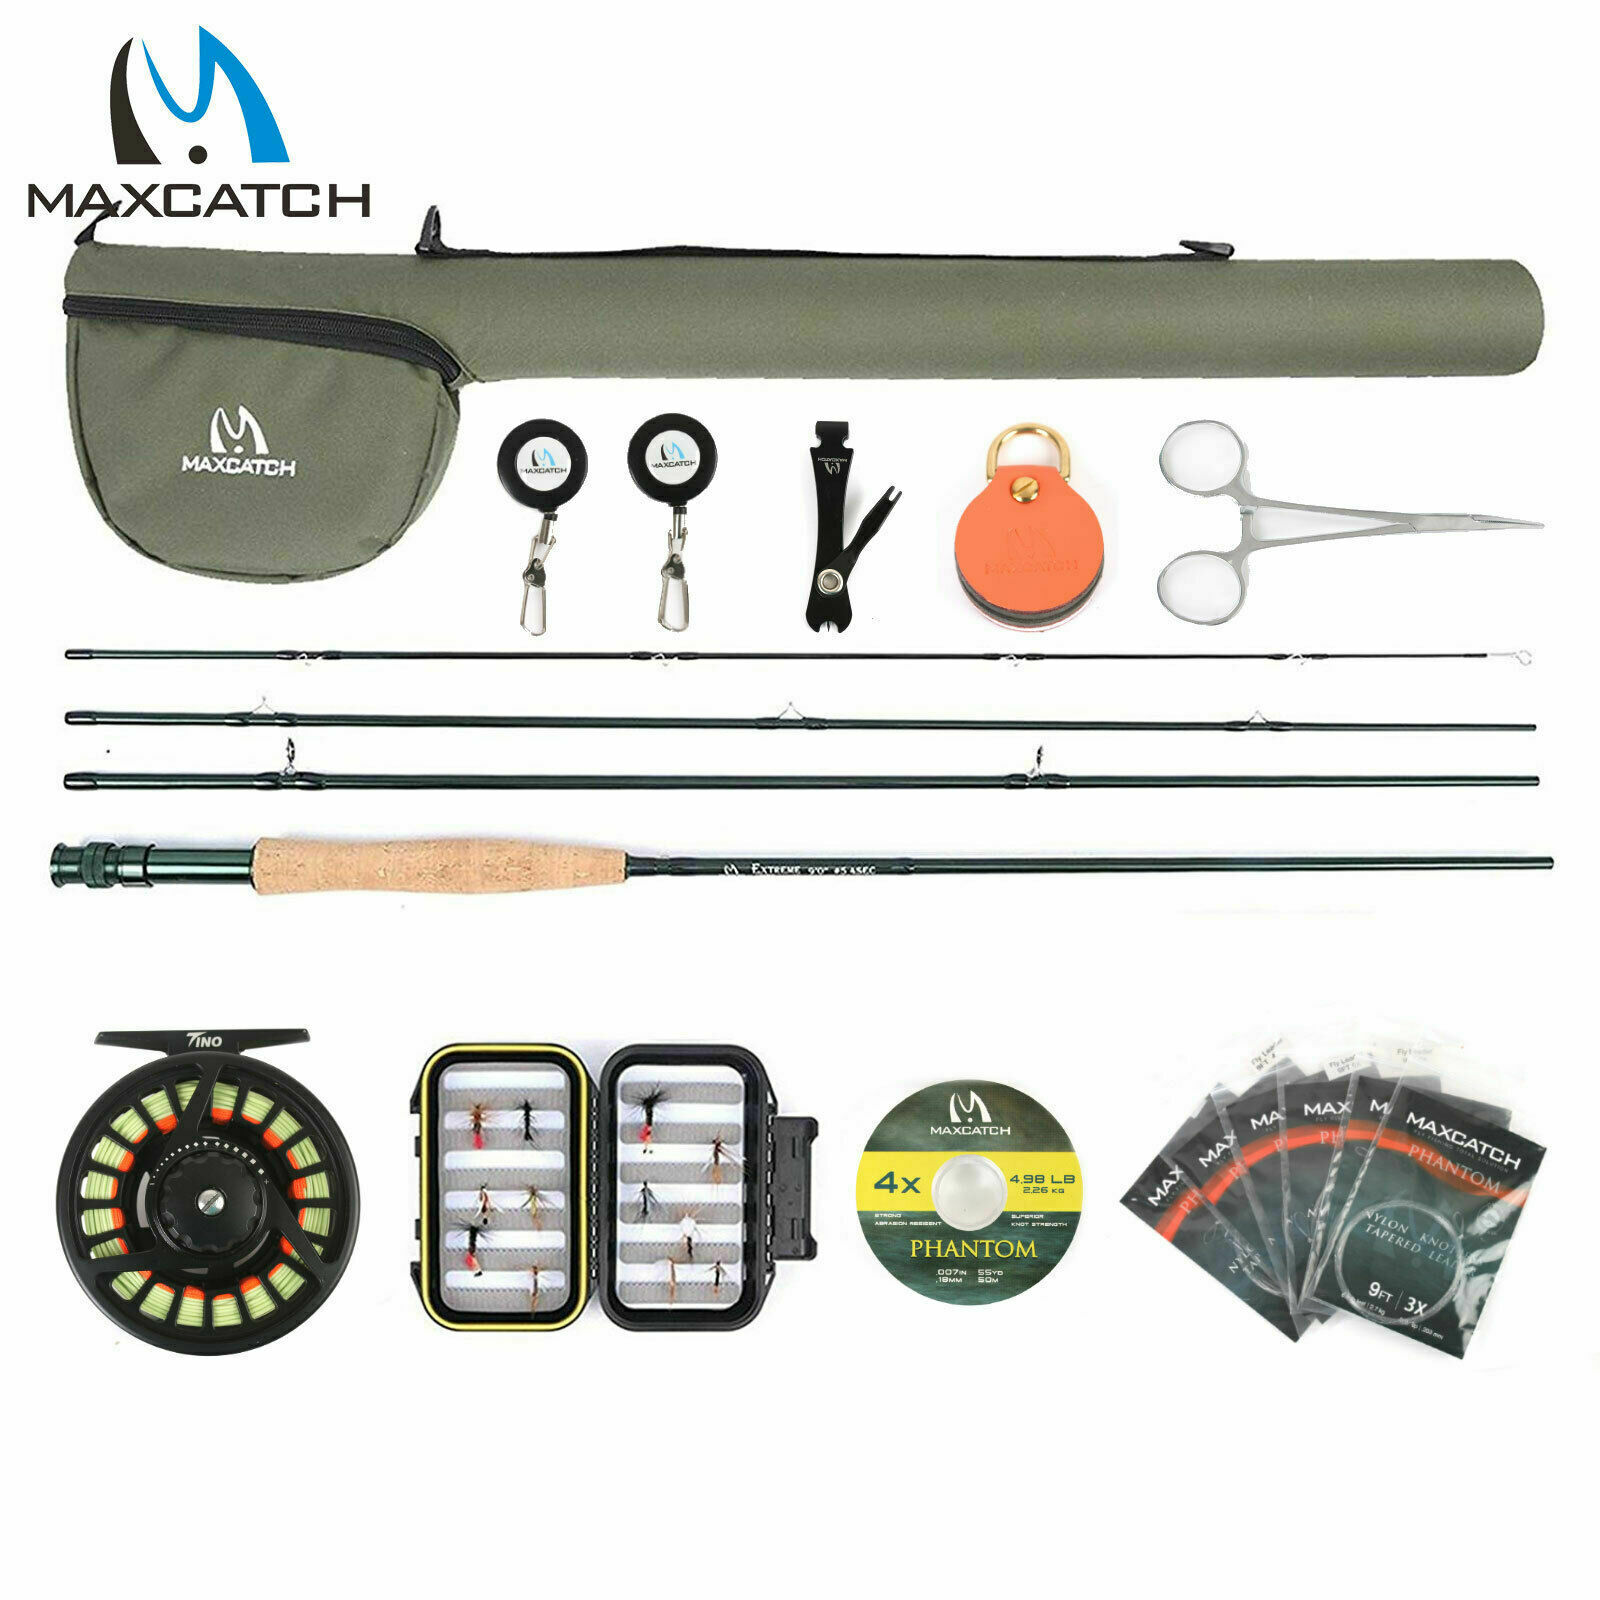 Maxcatch 5678wt Extreme Fly Fishing Rod and Reel Combo, Fly Line, Box, Flies